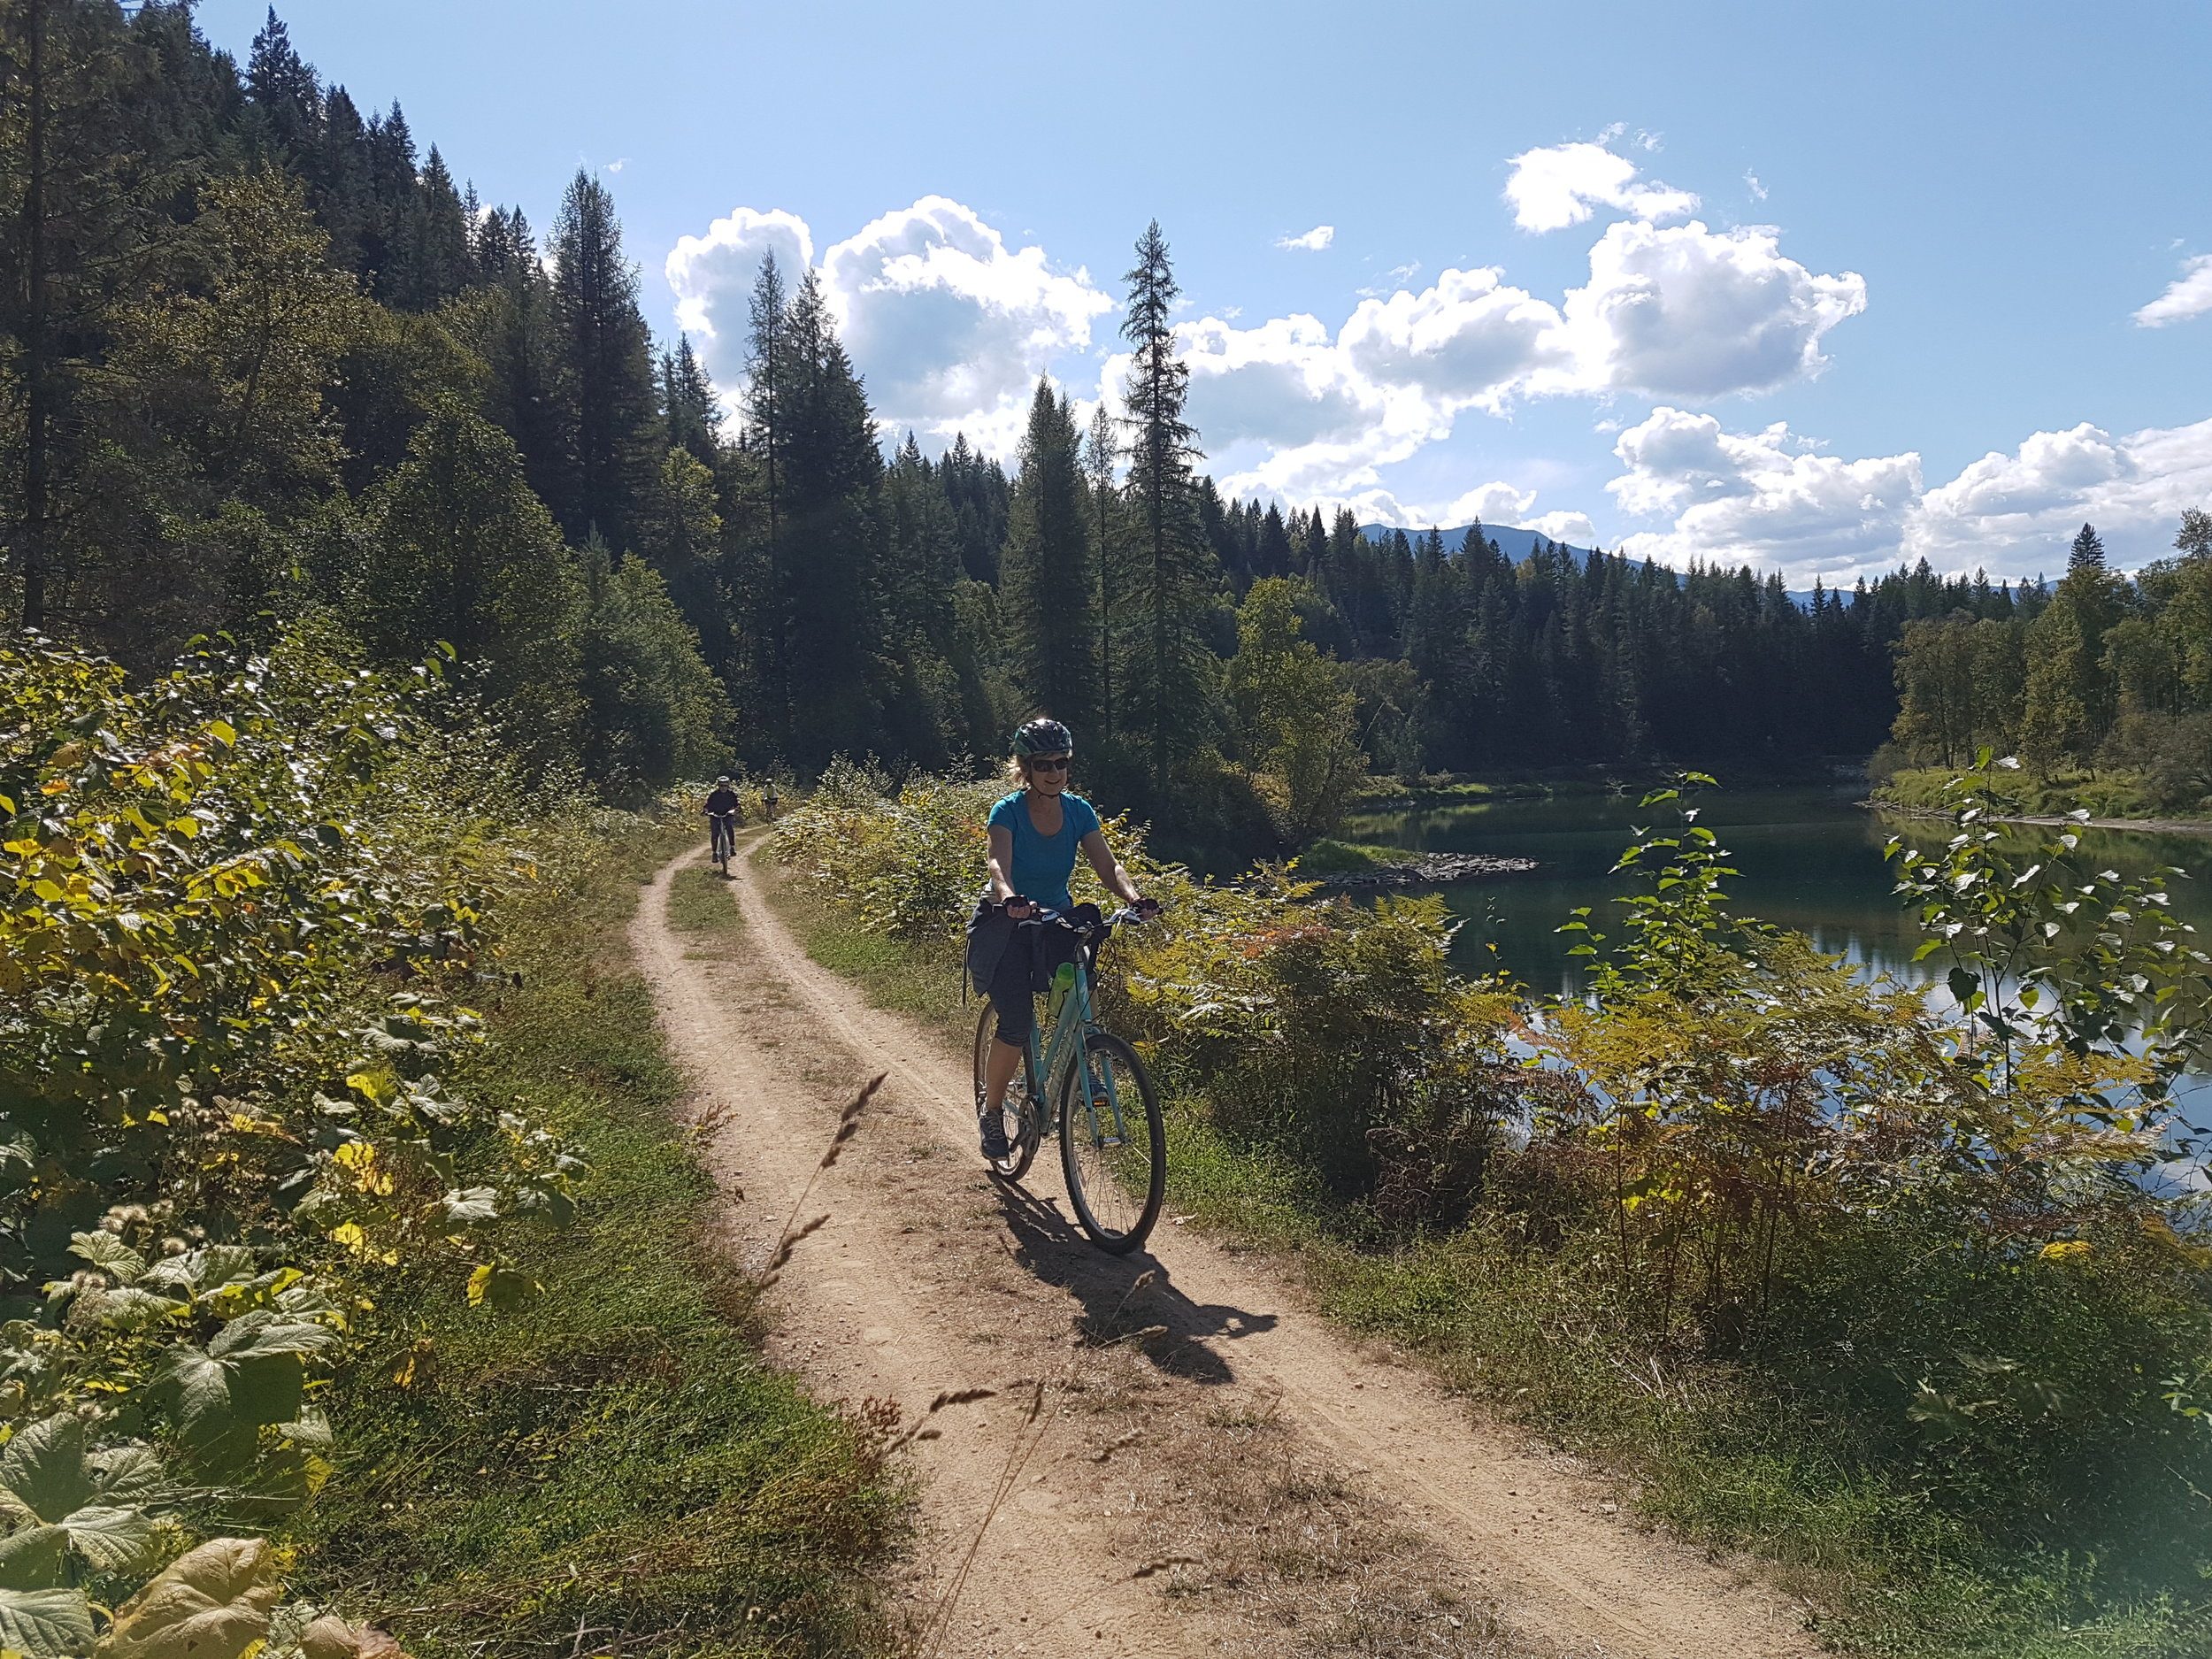 Riding along the Slocan Valley trail in Nelsn during our Mutliday tour